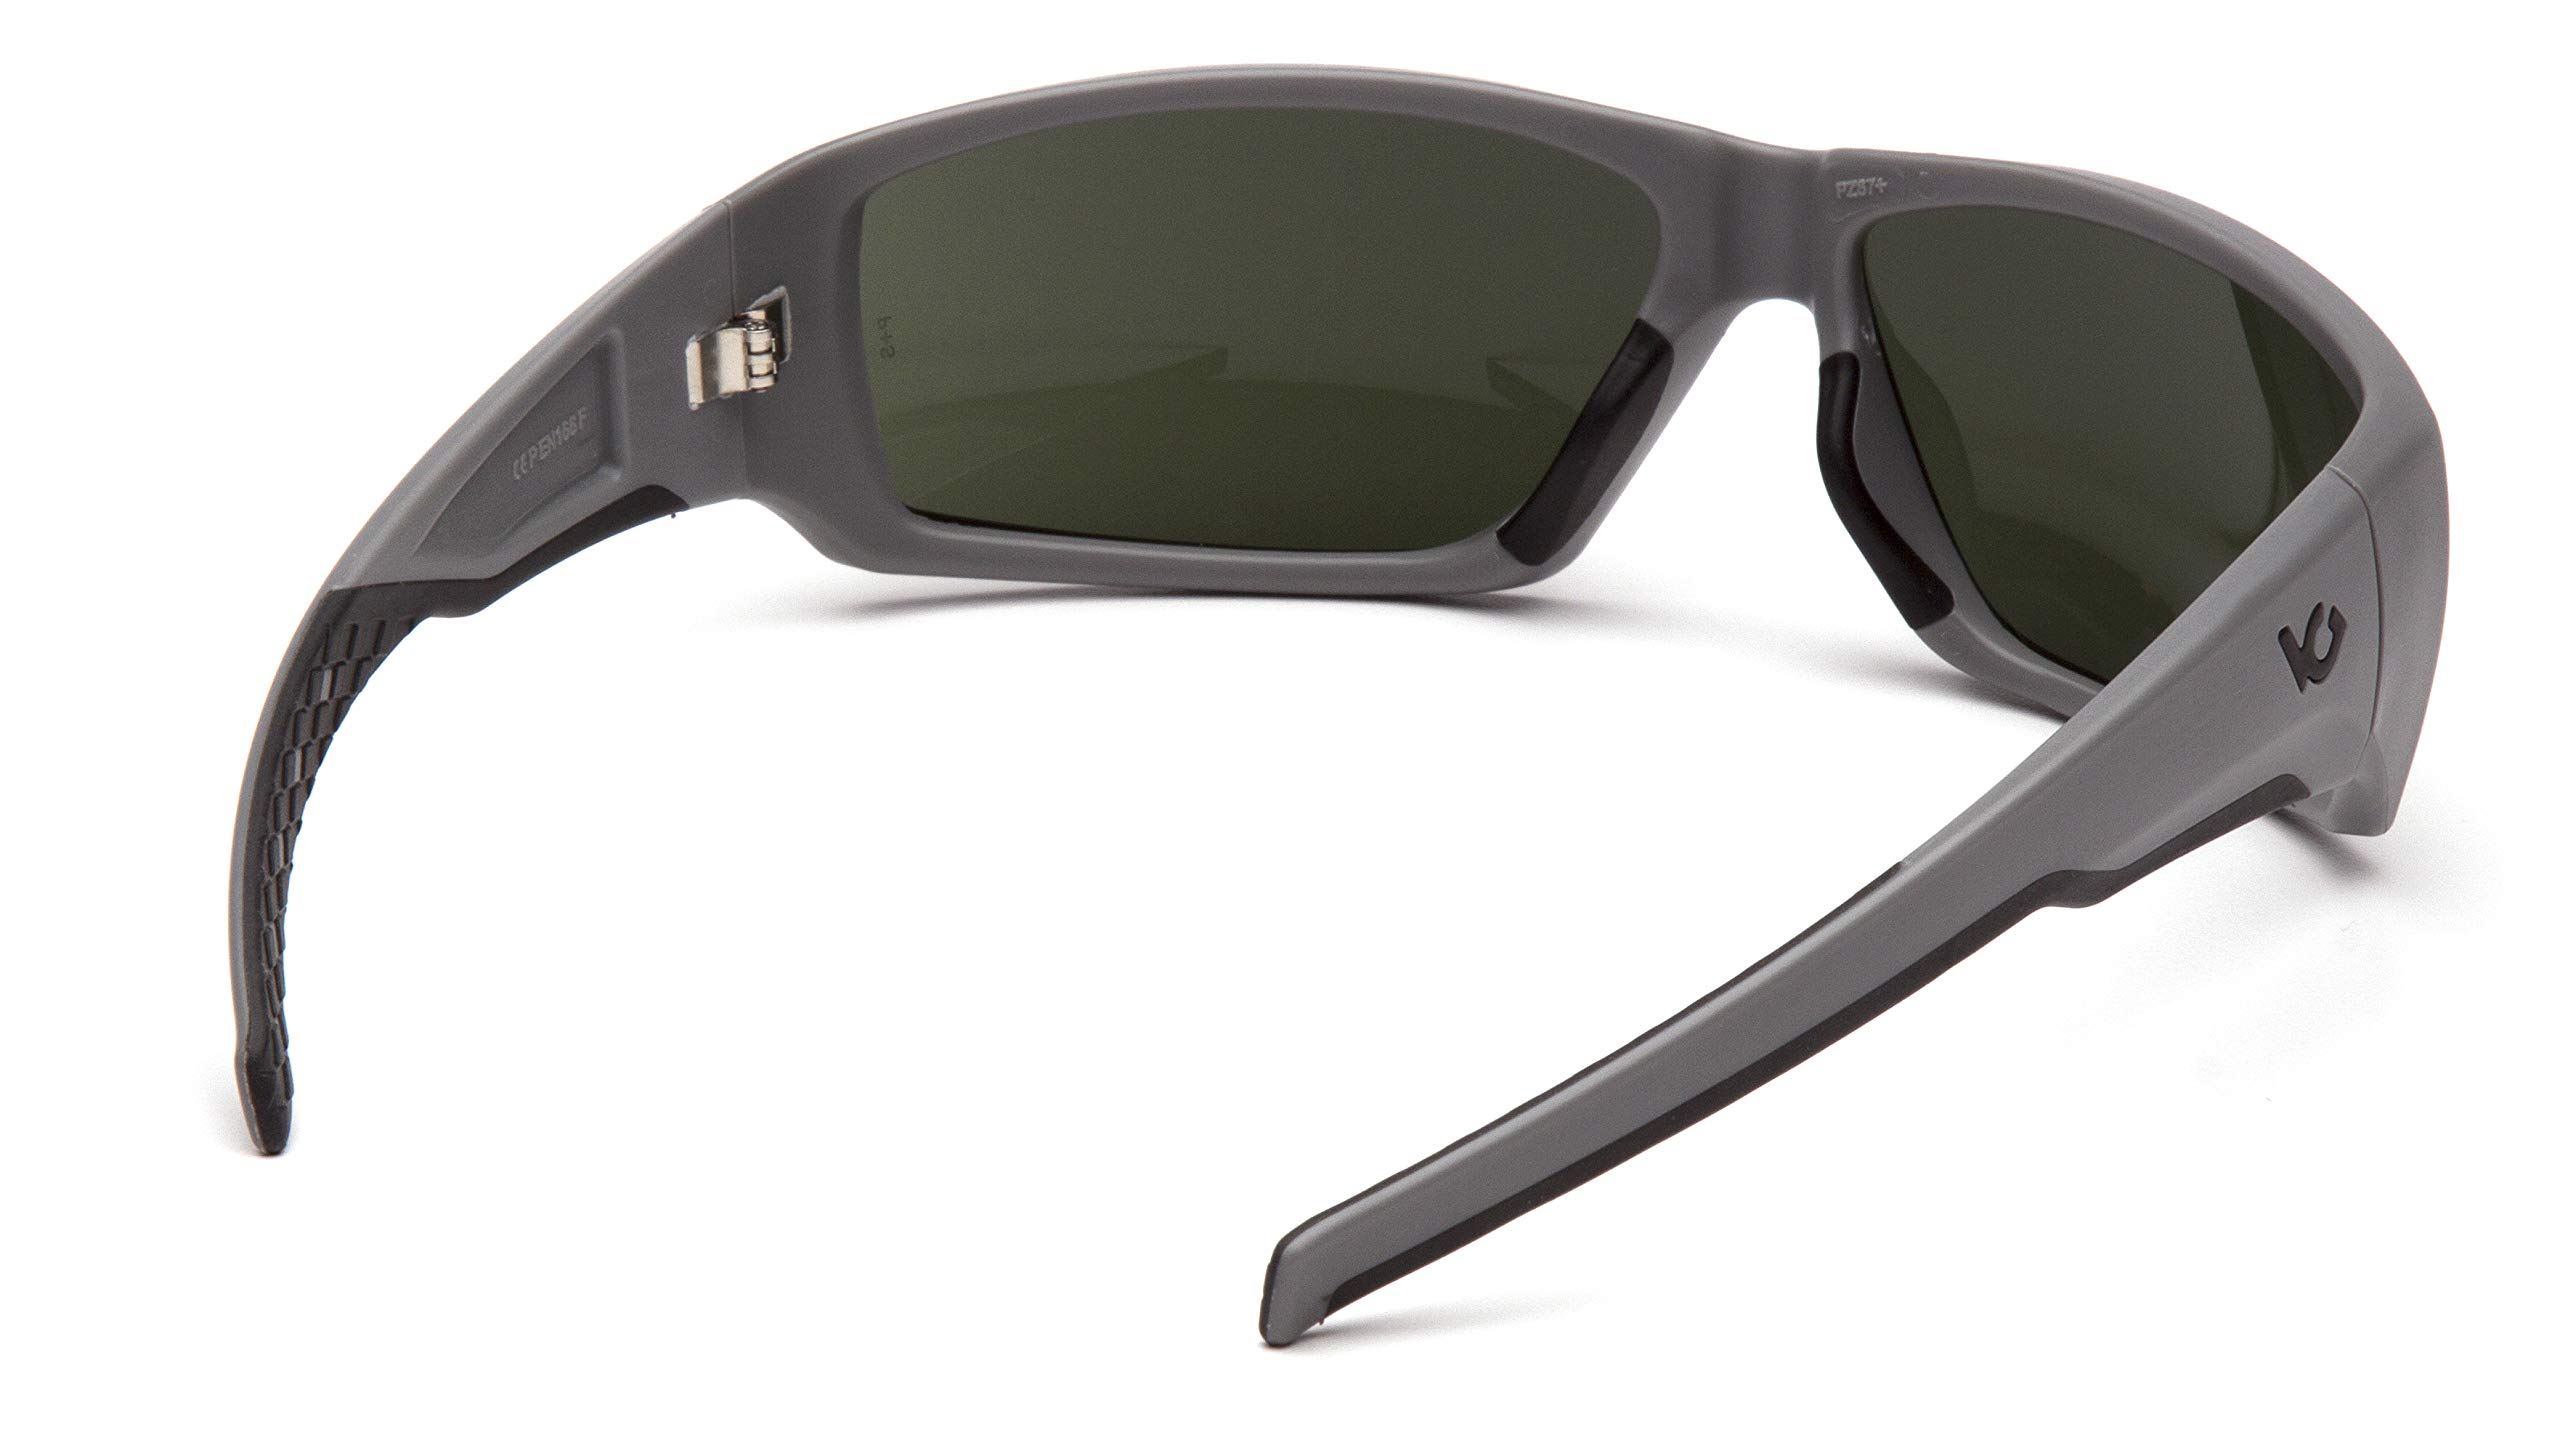 Venture Gear VGSUG722T Overwatch Tactical Sunglasses with Anti-Fog Lens, Urban Gray/Forest Gray by Venture Gear (Image #4)